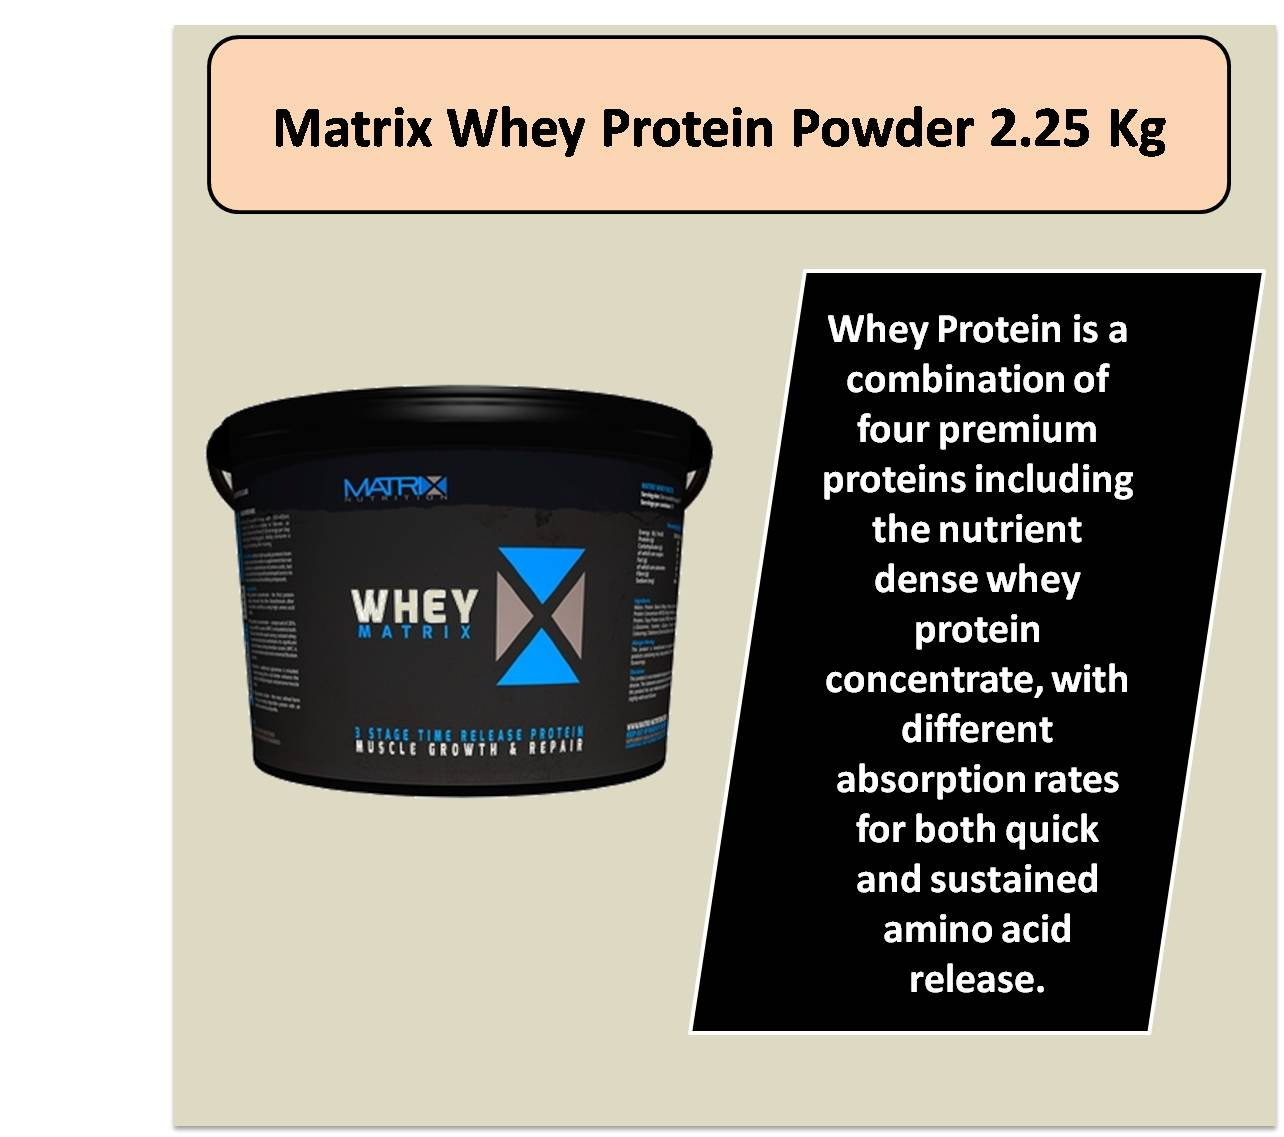 Matrix Whey Protein Powder 2.25 Kg